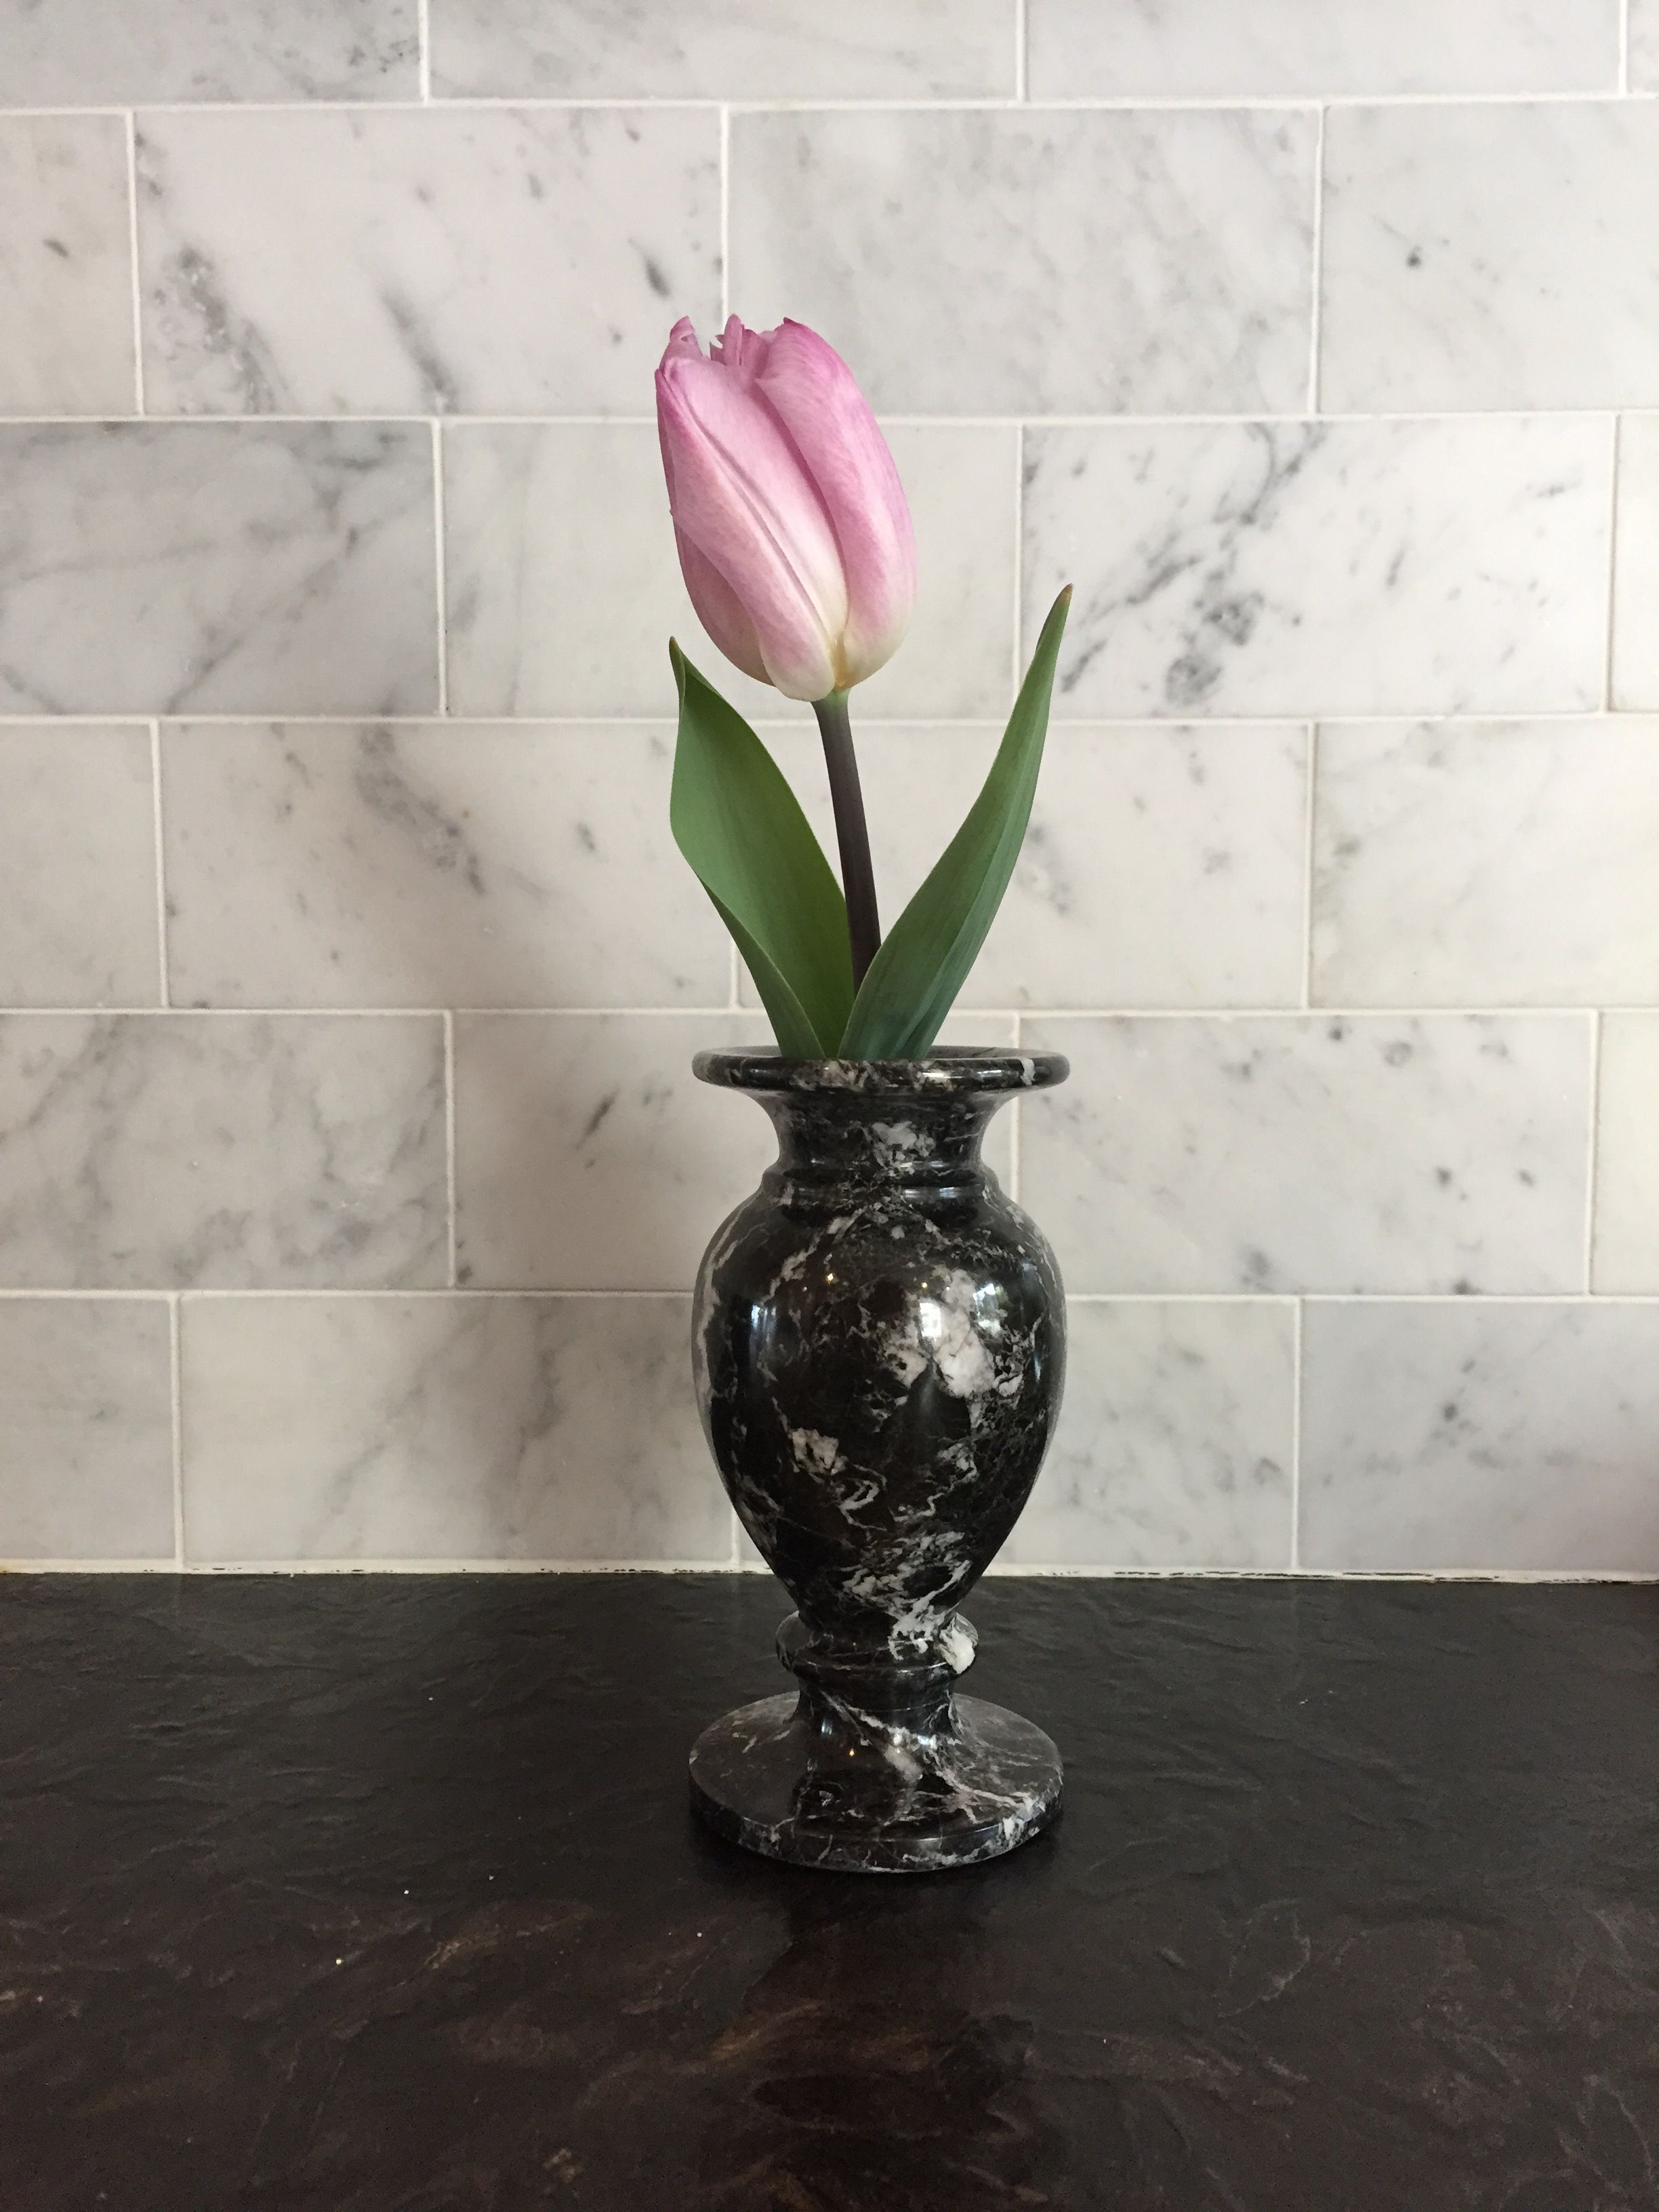 Pink tulip in black and white marble vase. First sign of spring in Seattle.